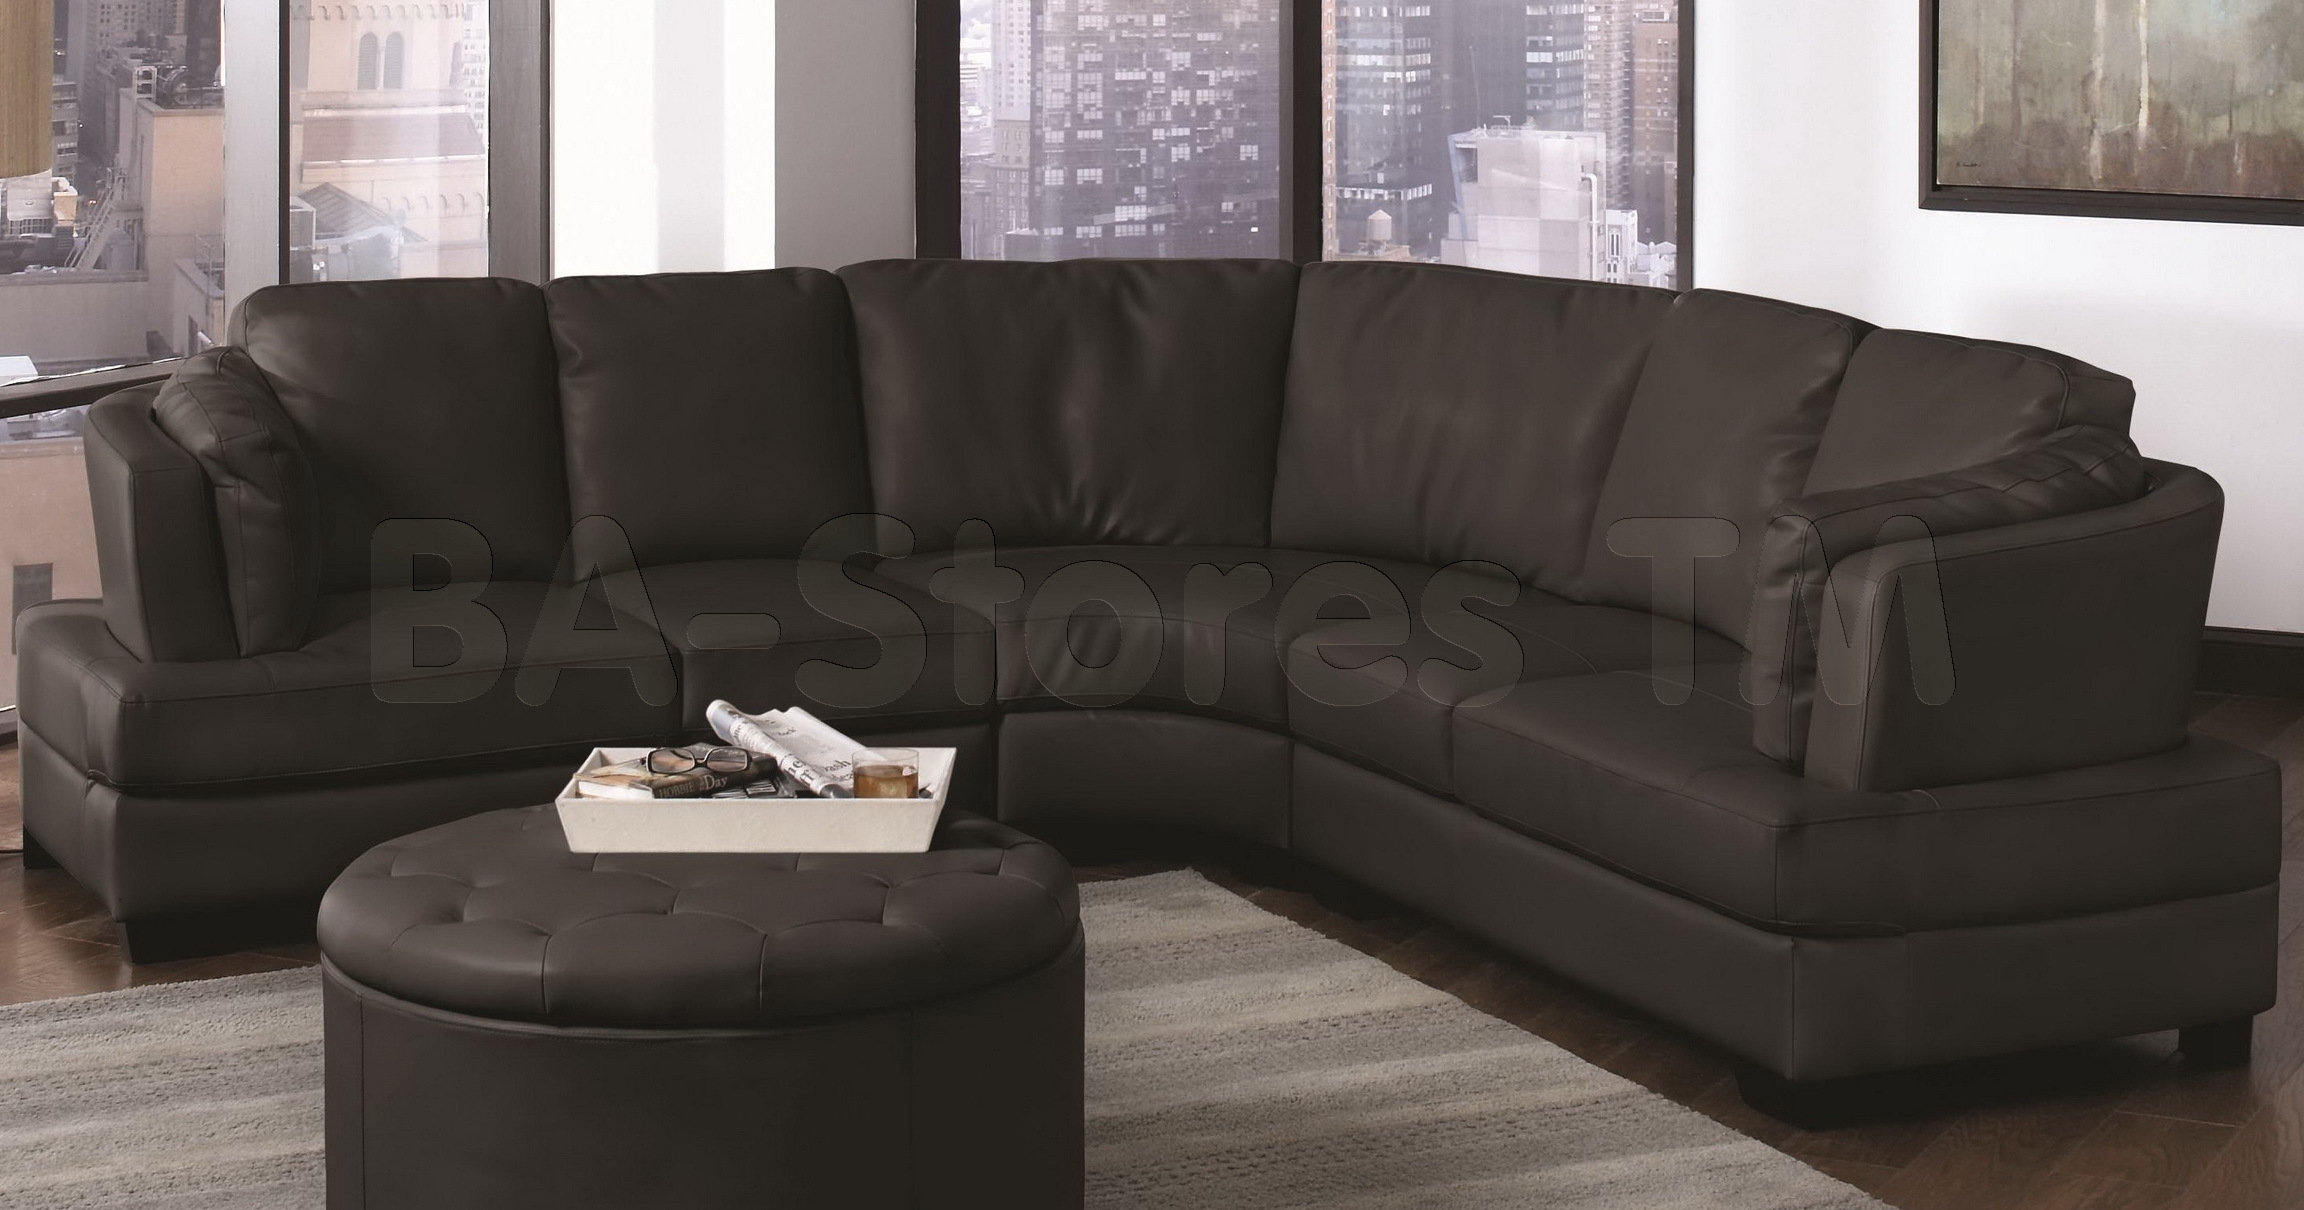 Sectional Sofa : Curved Corner Sectional Sofa Contemporary pertaining to Rounded Corner Sectional Sofas (Image 6 of 10)